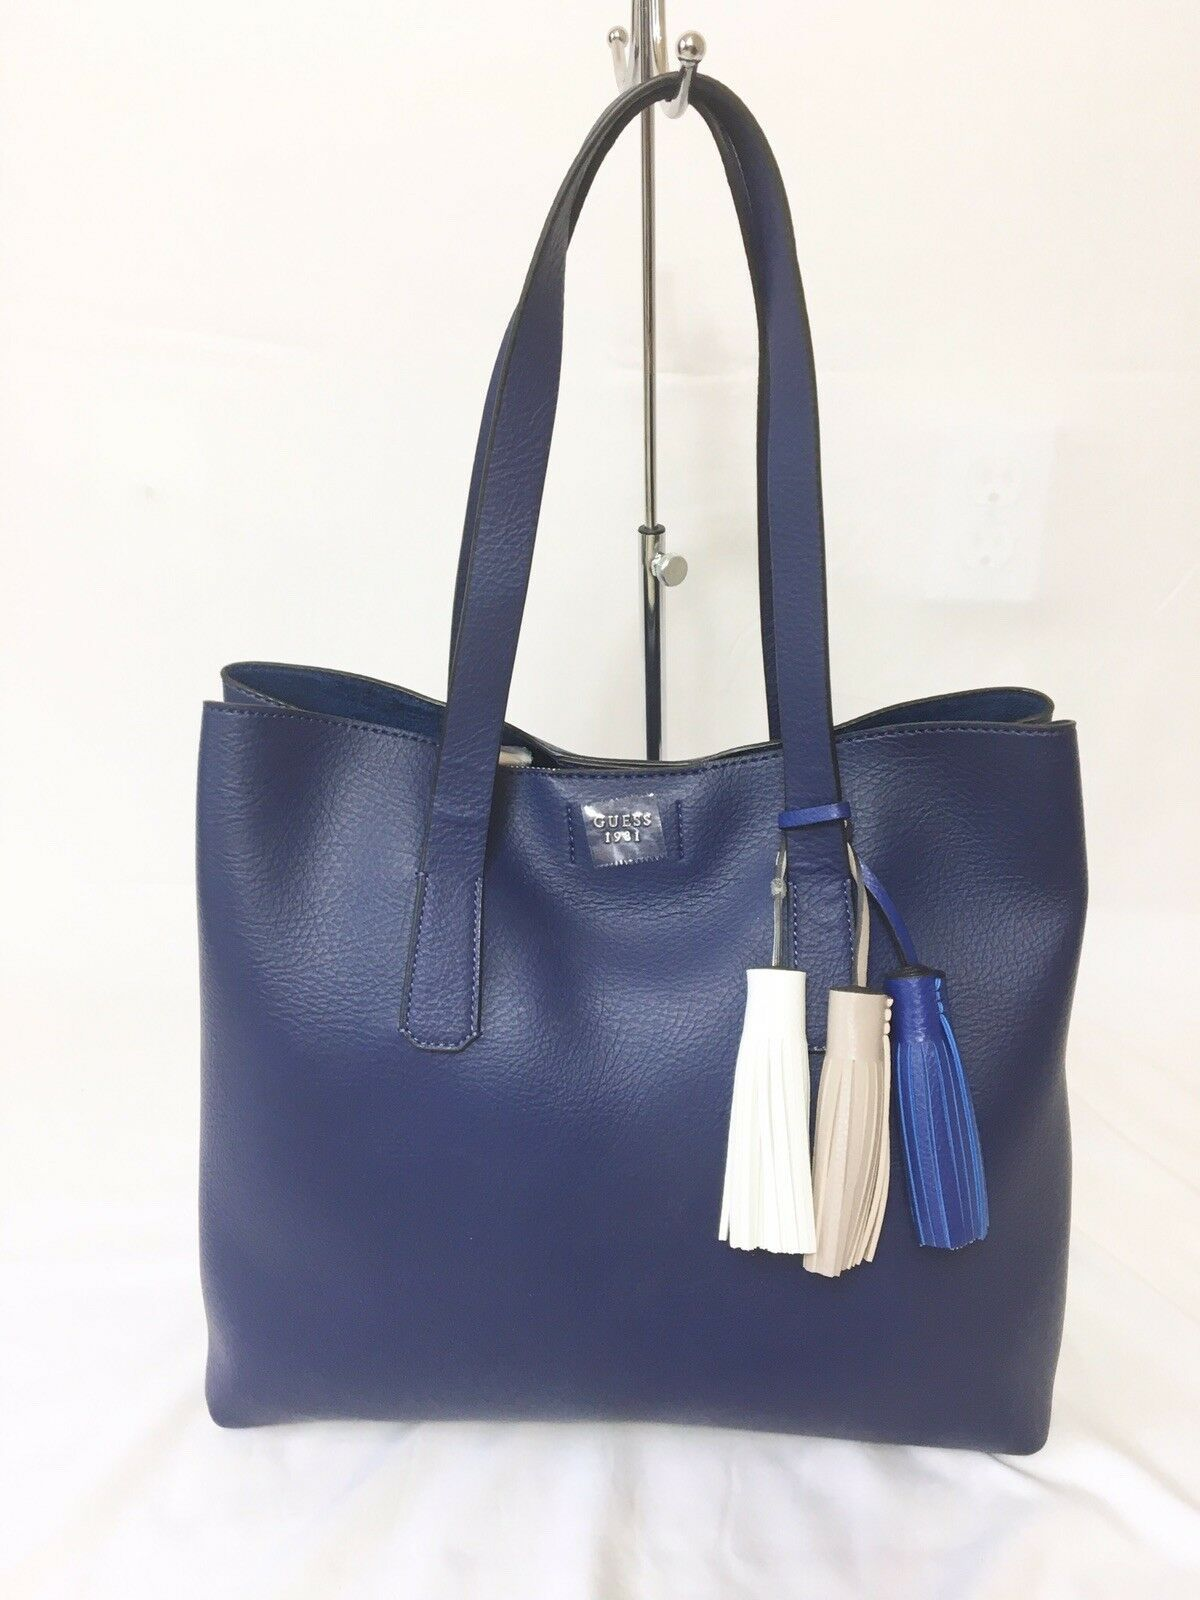 Primary image for Guess Trudy Large Tote BlueGold New